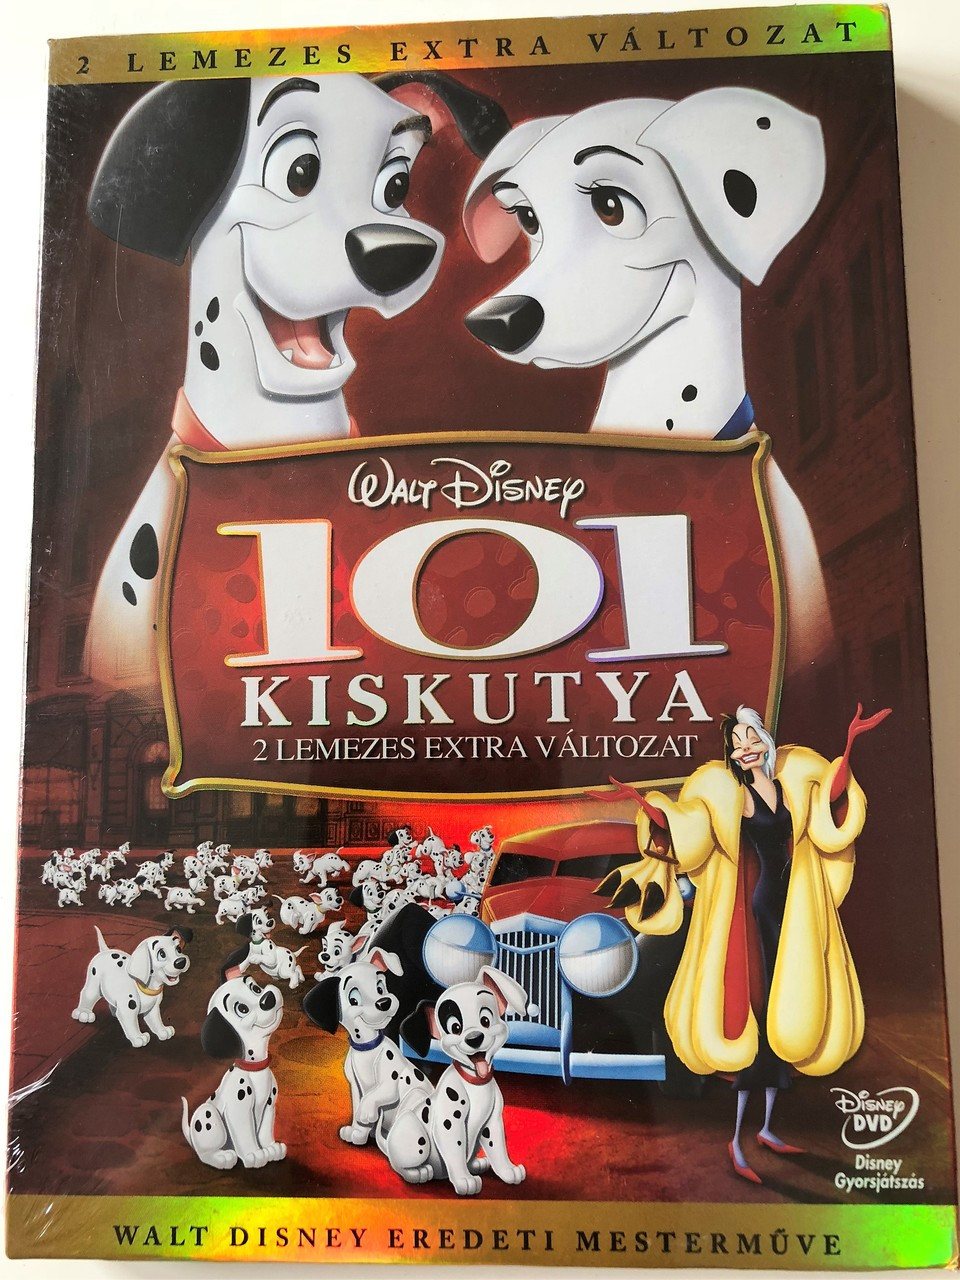 101 Dalmatians One Hundred And One Dalmatians 1961 European Collector S Edition 101 Kiskutya Dvd 2 Disc Extra Valtozat Rajzfilm Walt Disney Productions Story By Bill Peet Bibleinmylanguage